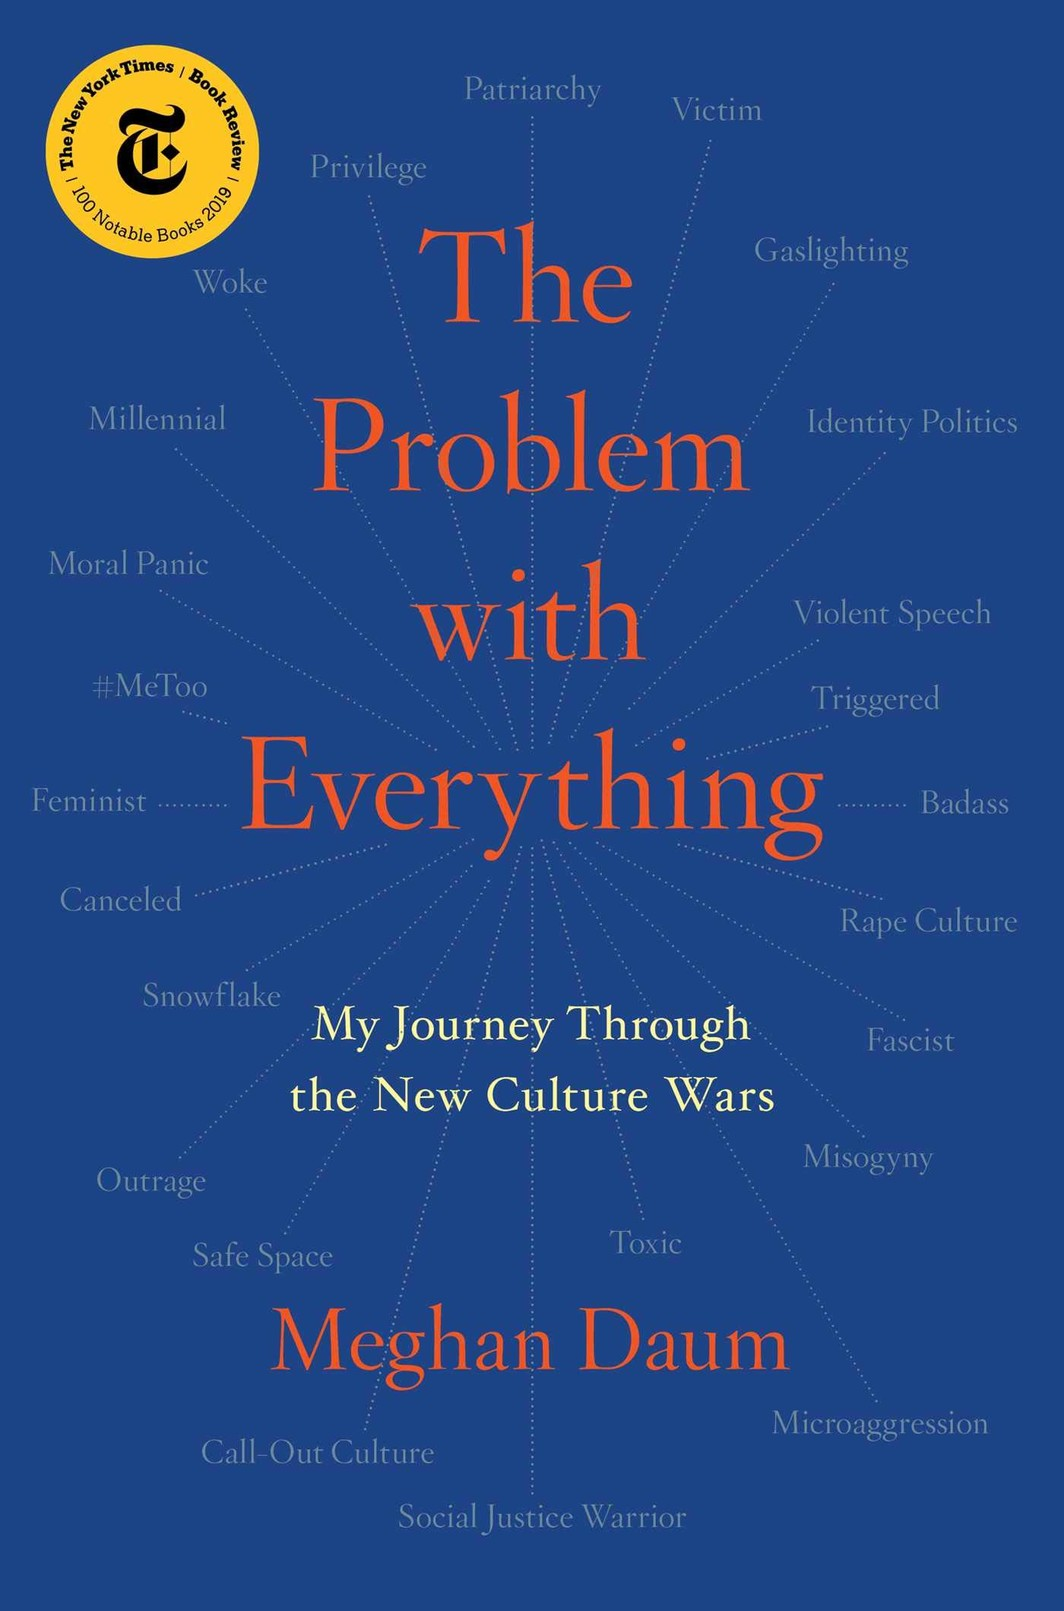 The cover of The Problem with Everything: My Journey Through the New Culture Wars